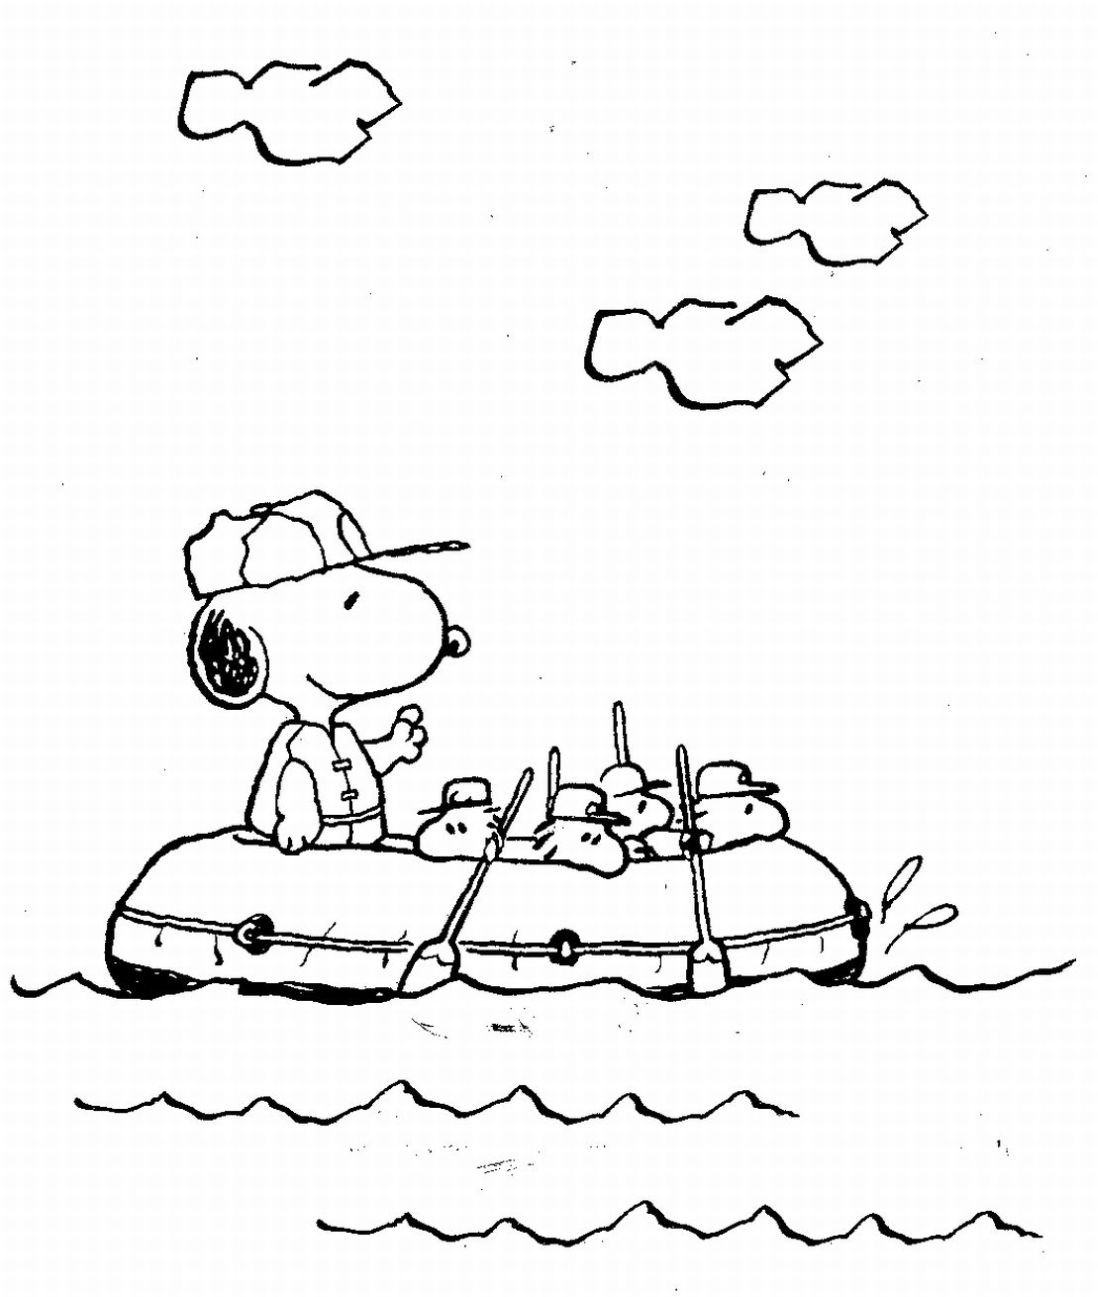 1098x1297 Free Printable Snoopy Coloring Pages For Kids Baby Stunning Snoppy